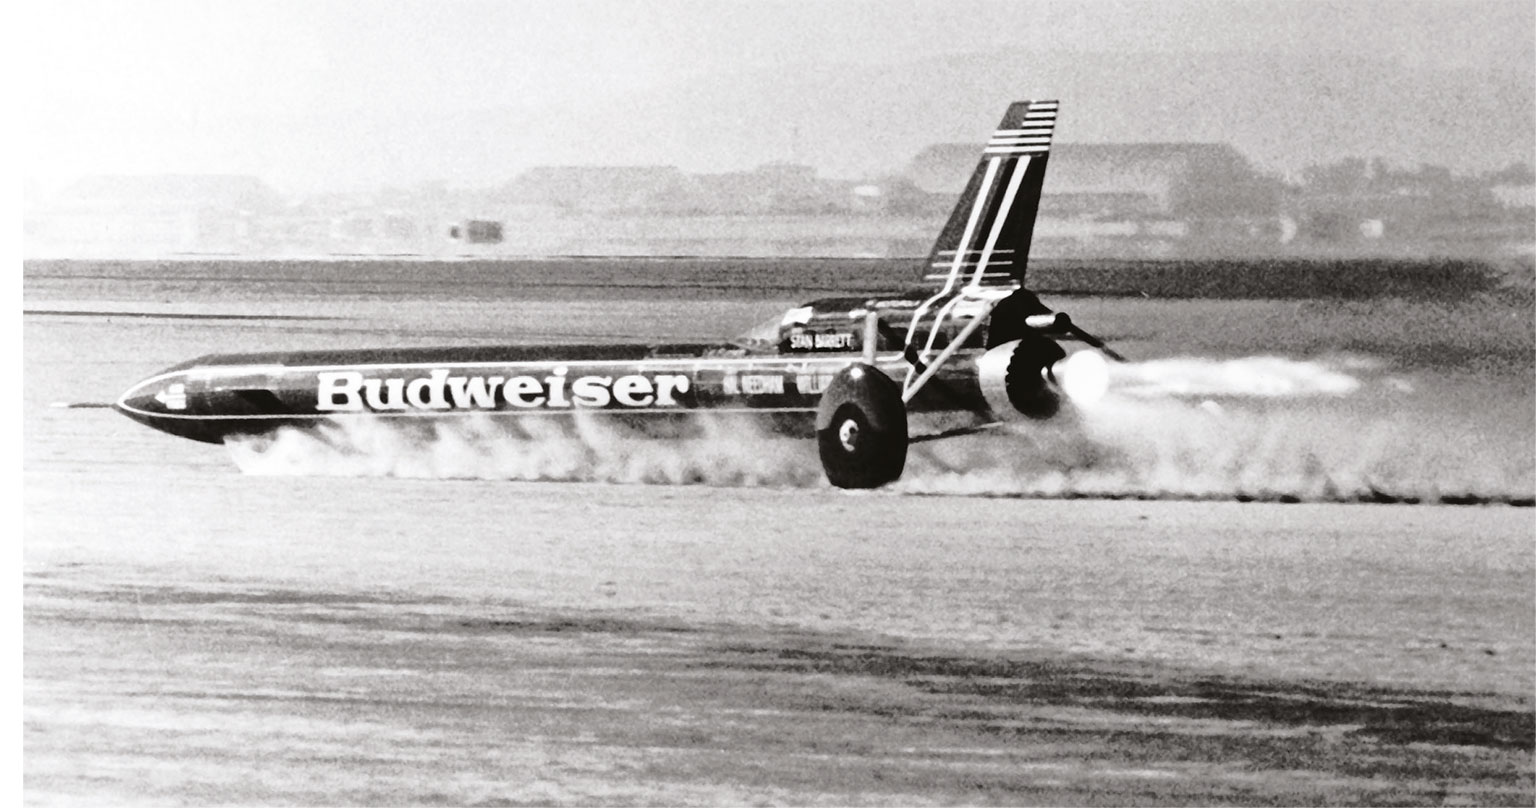 The Budweiser Rocket's controversial land speed record run at Edwards Air Force Base made the Guinness Book of World Records before later being stripped of that honour